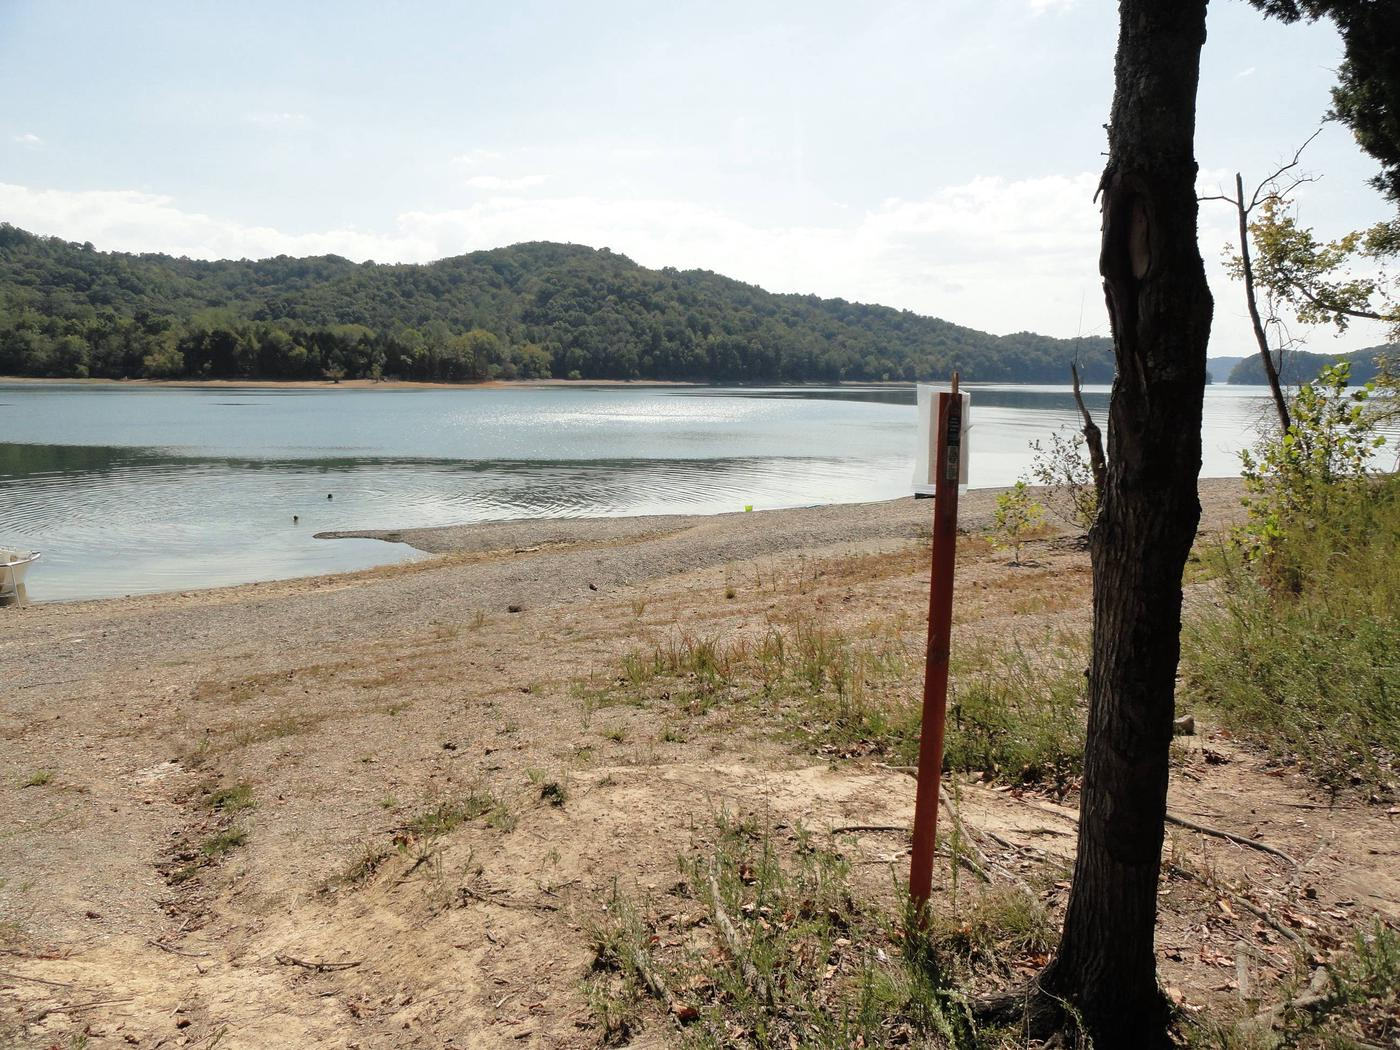 DALE HOLLOW LAKE - PRIMITIVE CAMPING SITE MARKER WITH SHORELINE VIEW